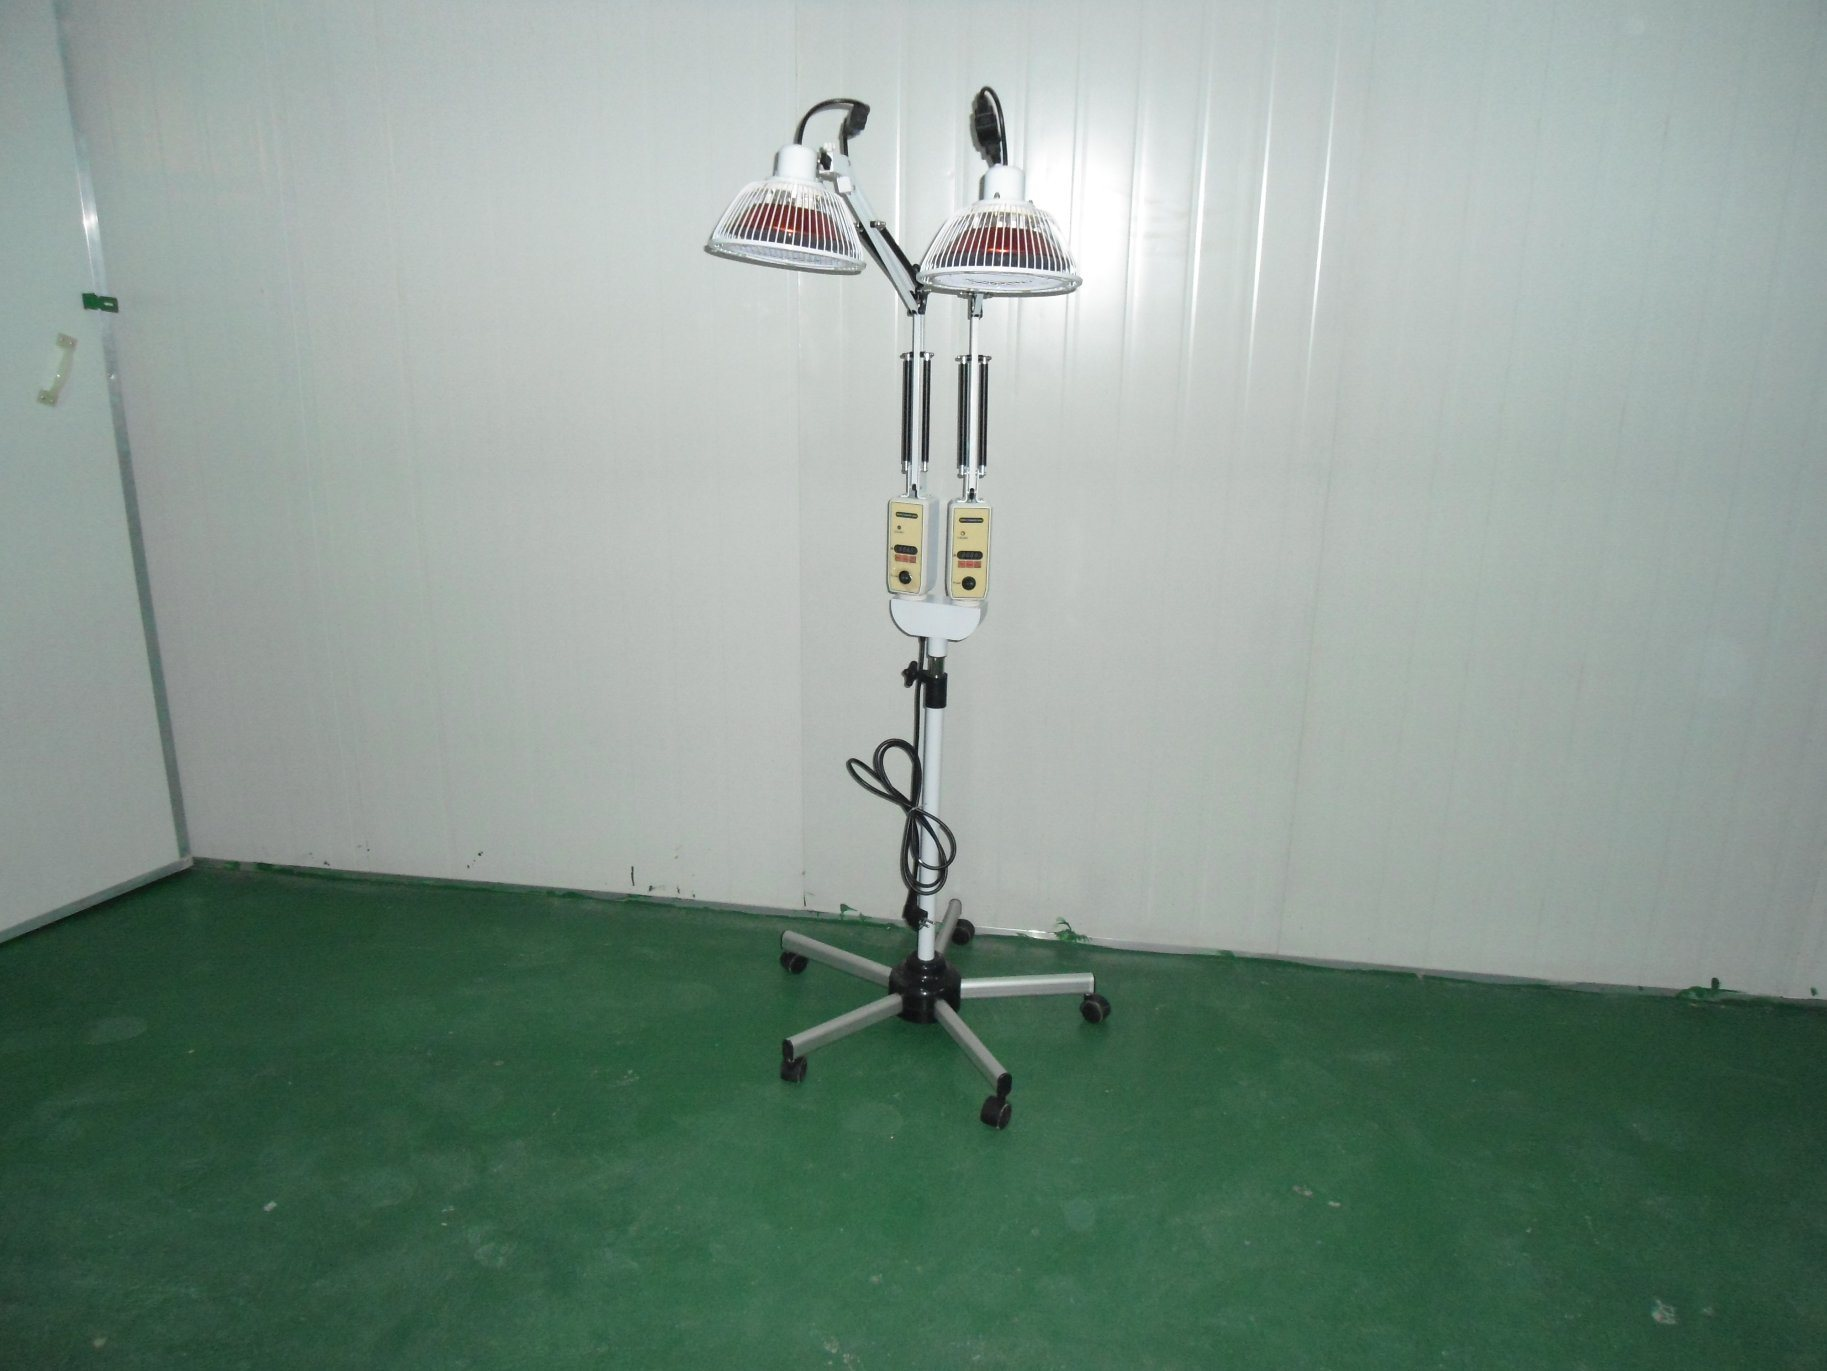 Tdp Lamp (CQ-55A) , Healing Lamp, Far Infrared Lamp, Miracle Lamp with FDA 510k for Eczema, Contact Dermatitis, Neurodermatitis, Herpes Zoster, etc.